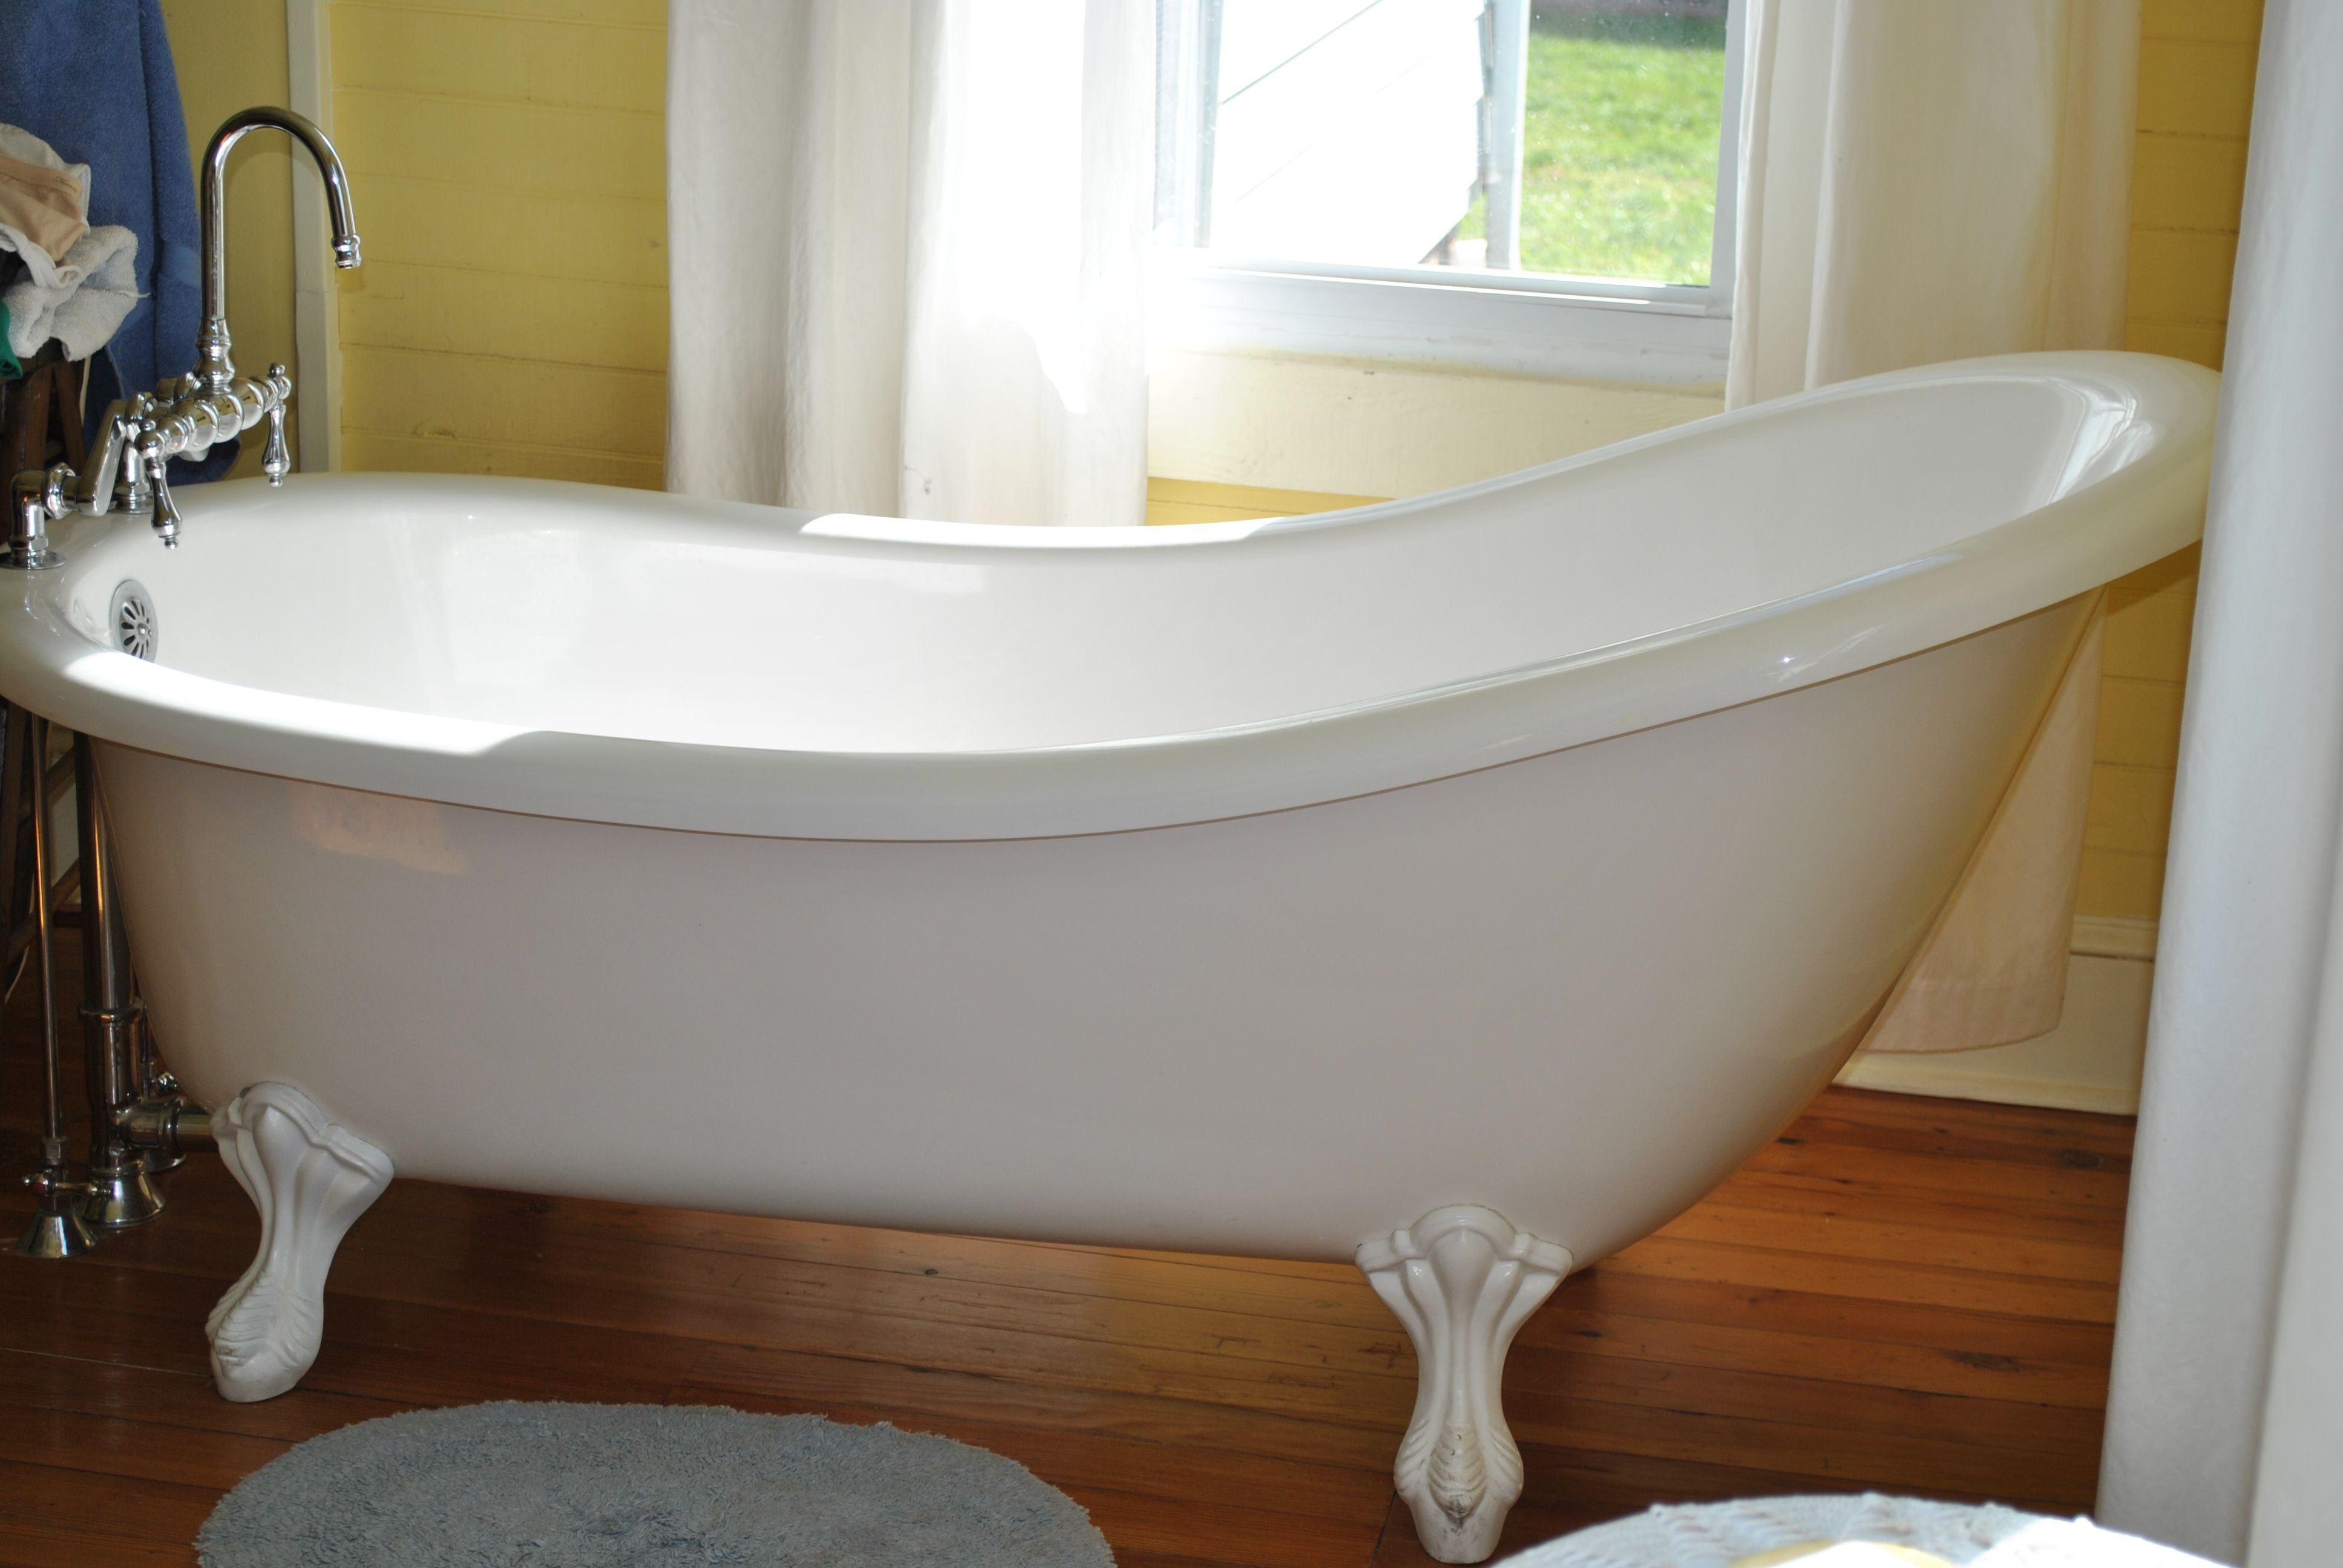 Clawfoot tub, 5 1/2 ft in length. | Bathrooms | Pinterest | Tubs ...